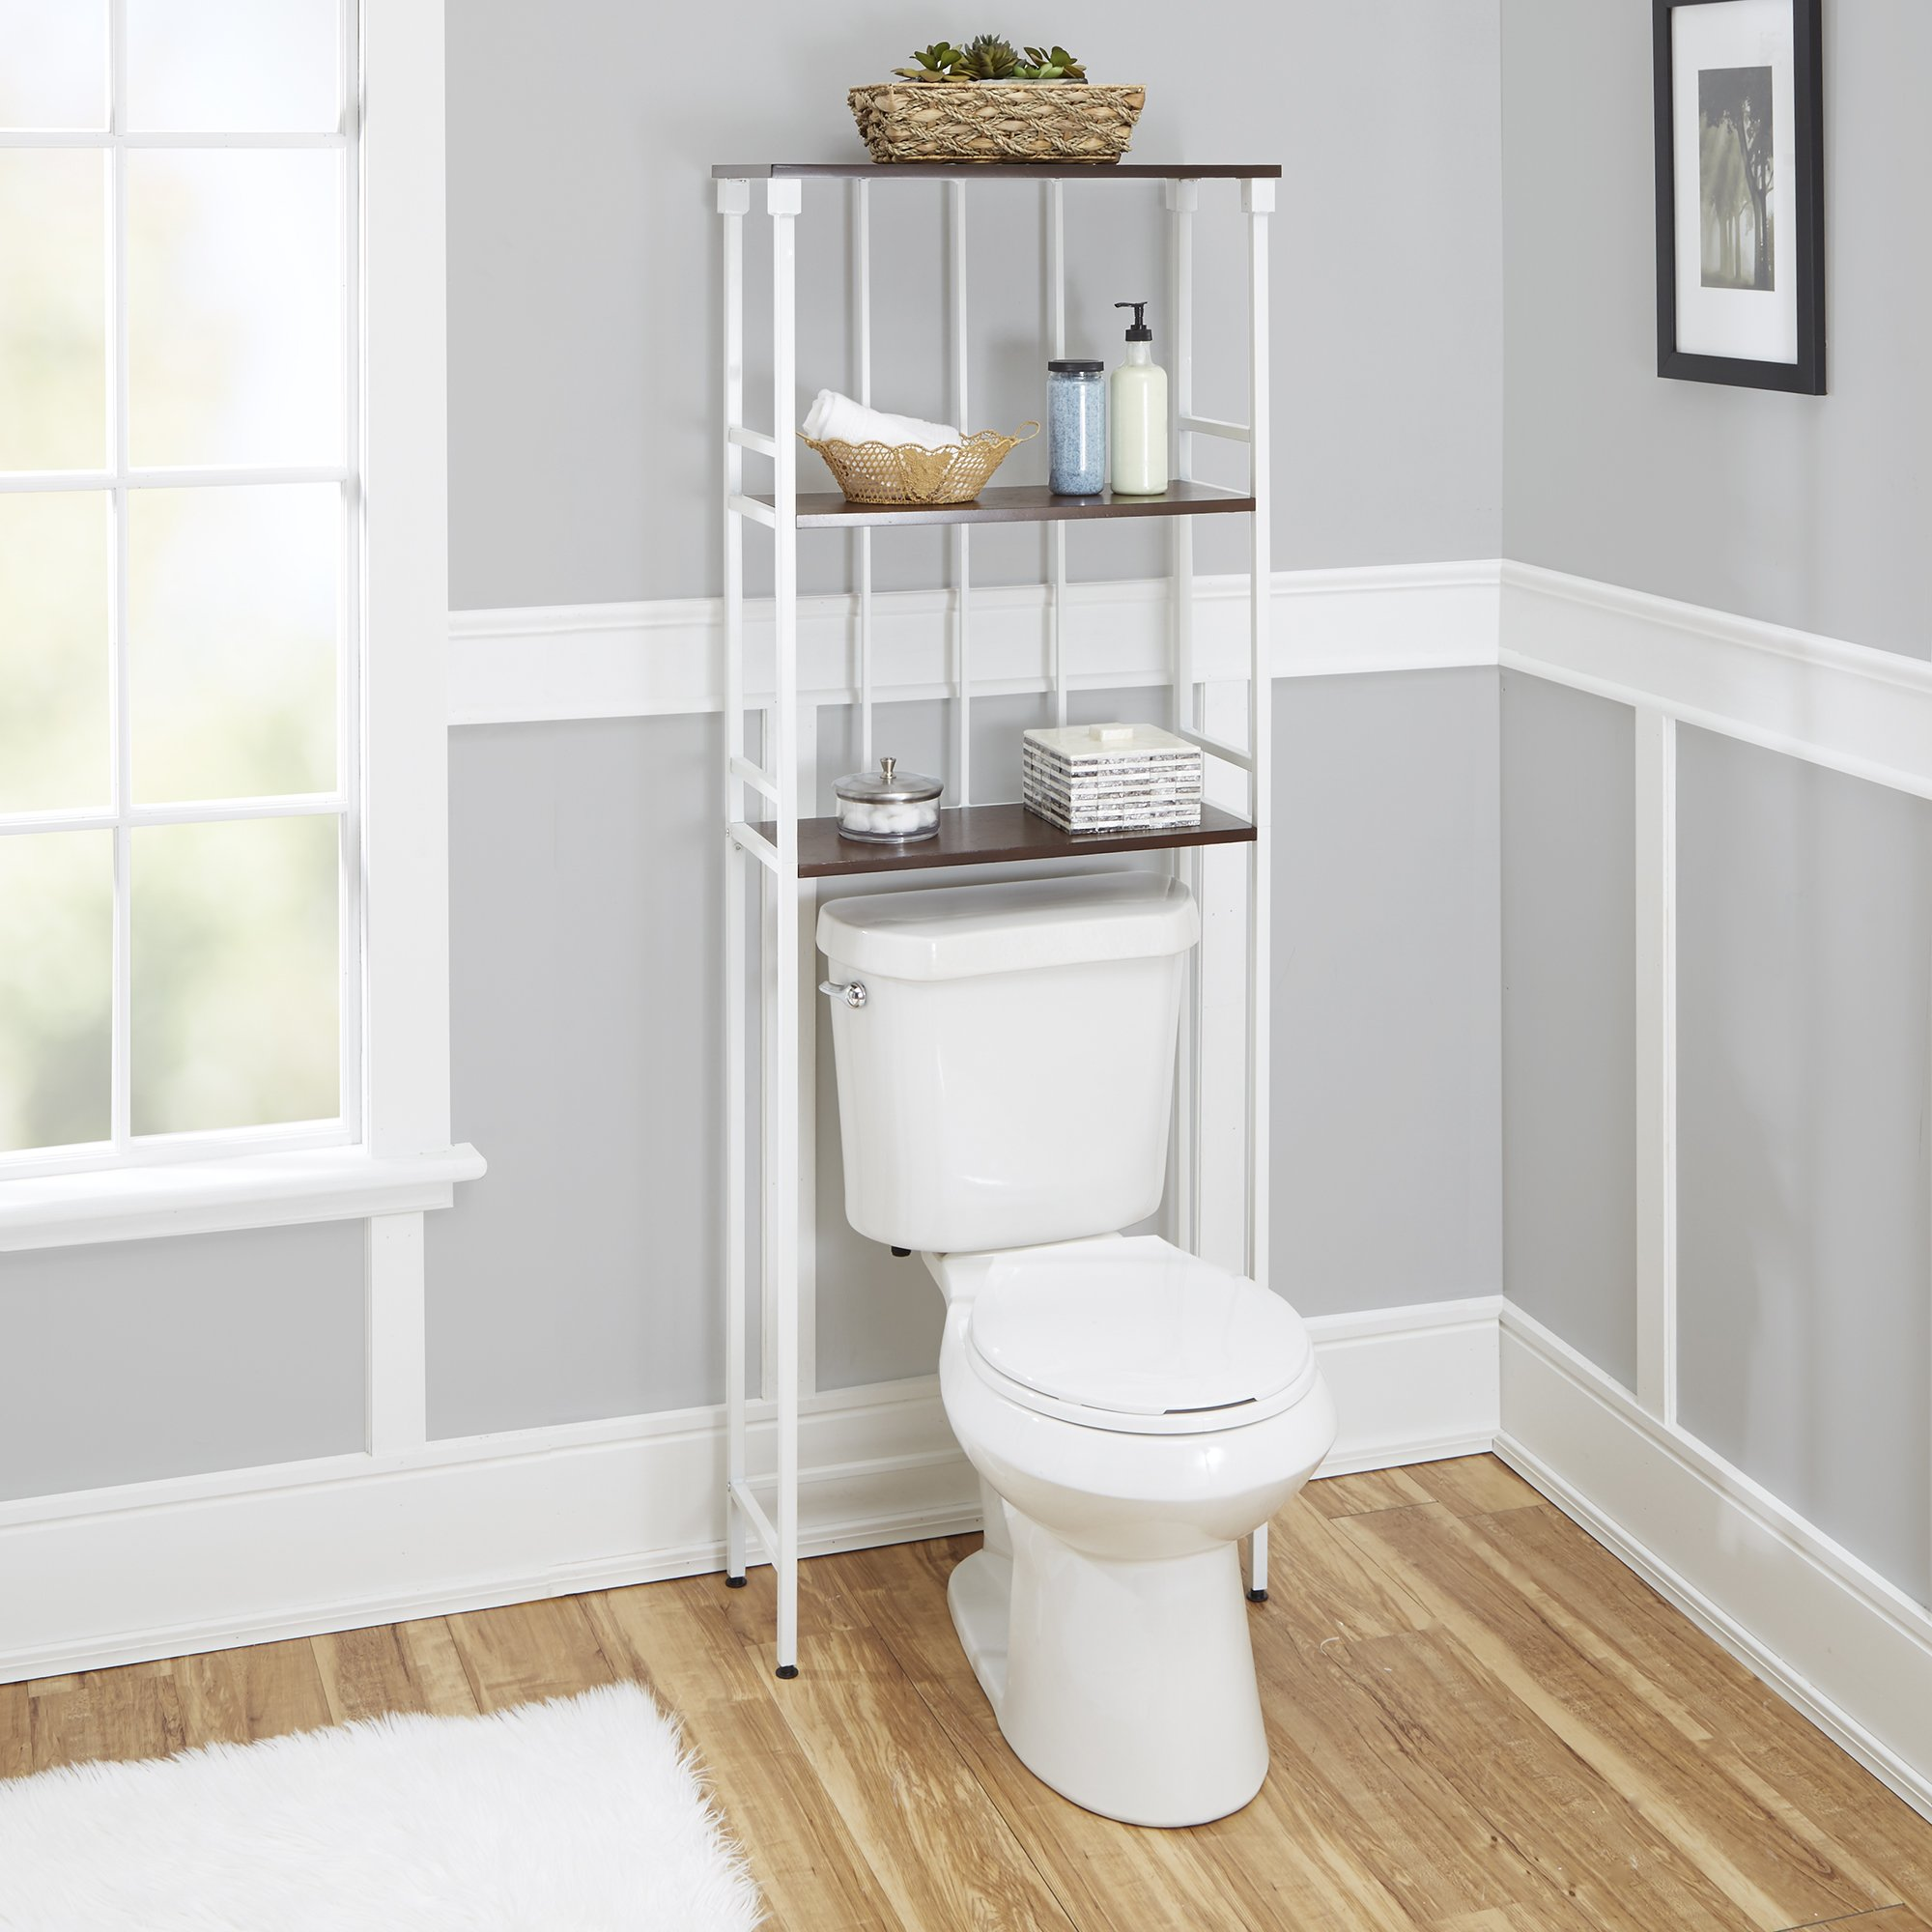 Silverwood Mixed Material Bathroom Collection 3-Tier Spacesaver 3, 66'' H, White by Silverwood (Image #2)